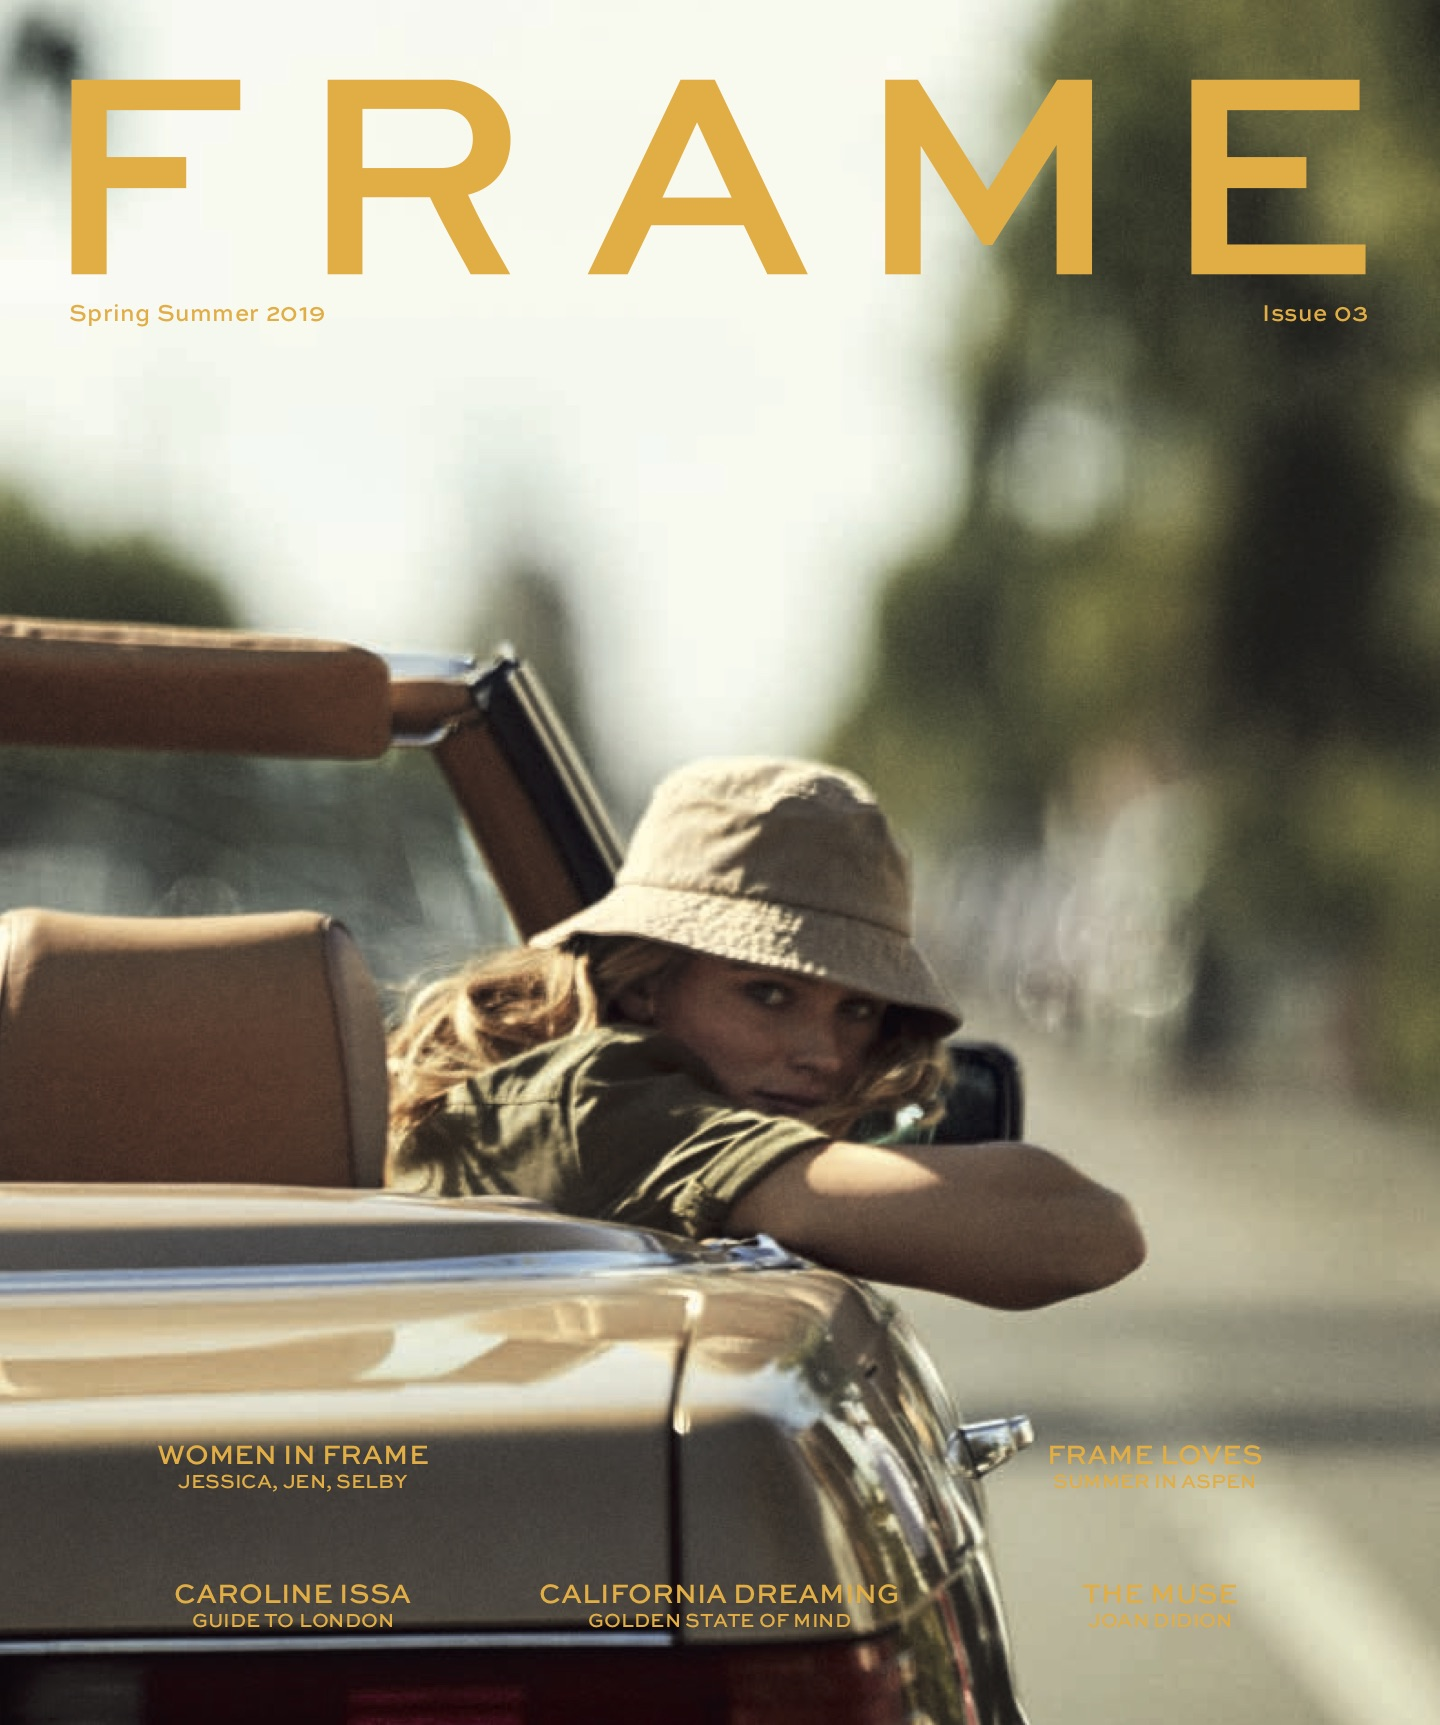 The cover of FRAME Magazine 003